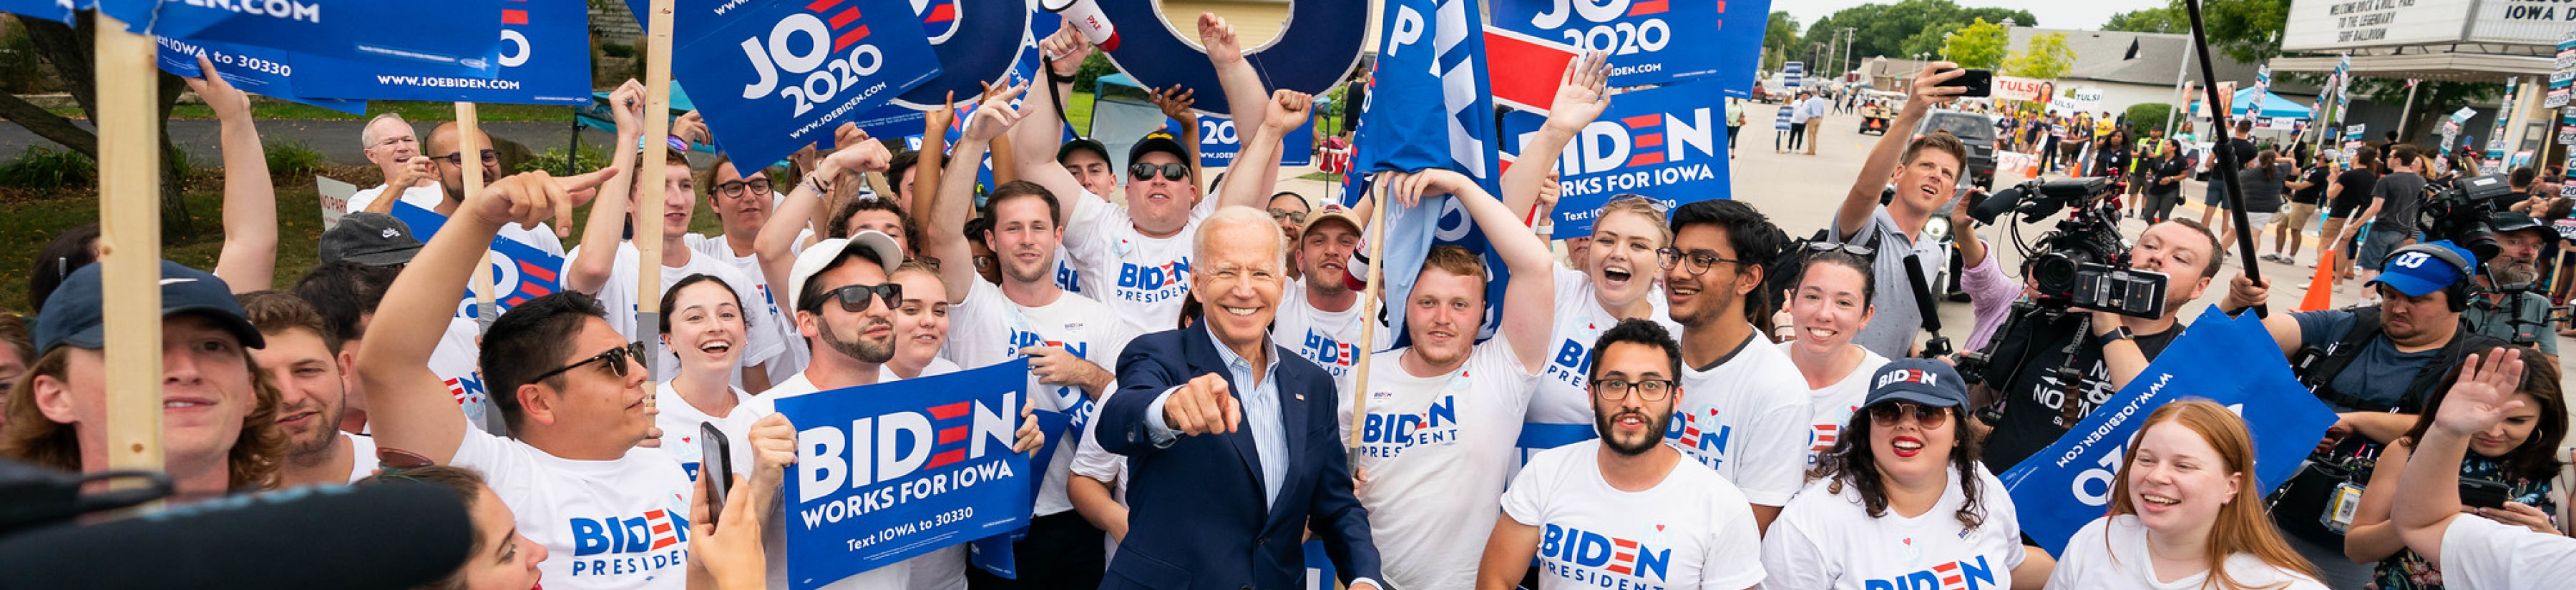 President, then candidate, Joe Biden surrounded by a crowd of supporters.